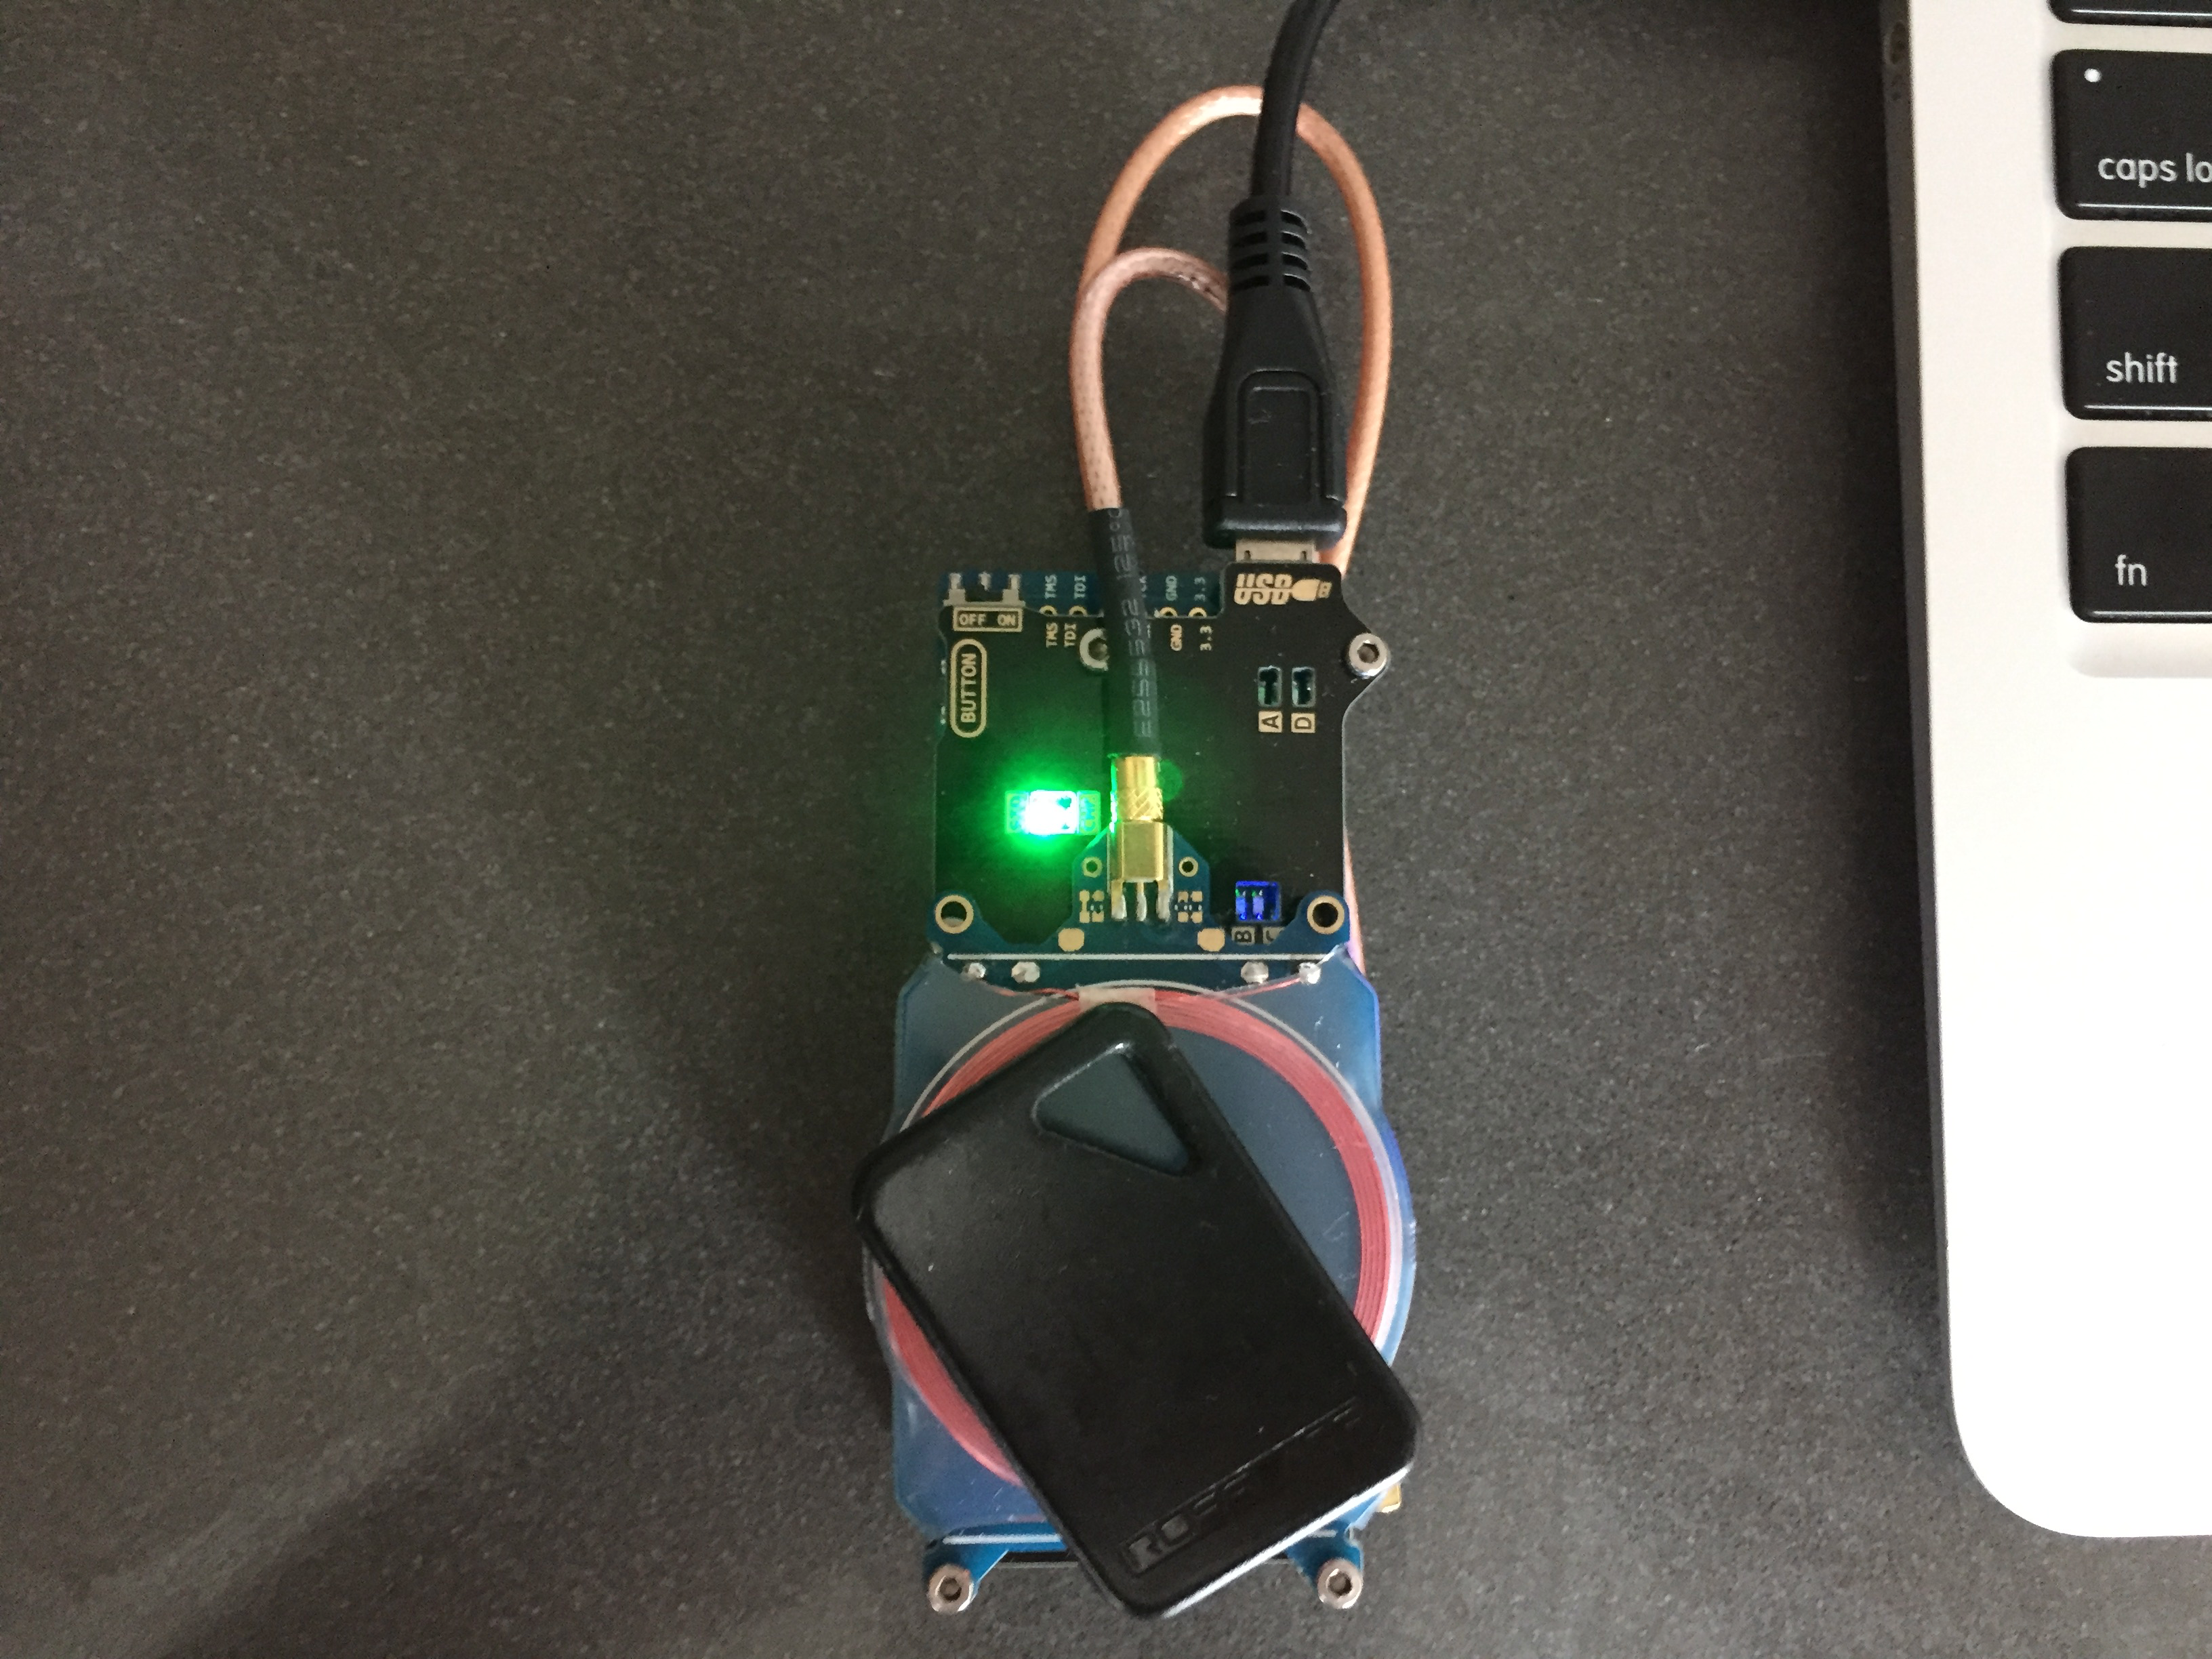 RFID Hacking with The Proxmark 3